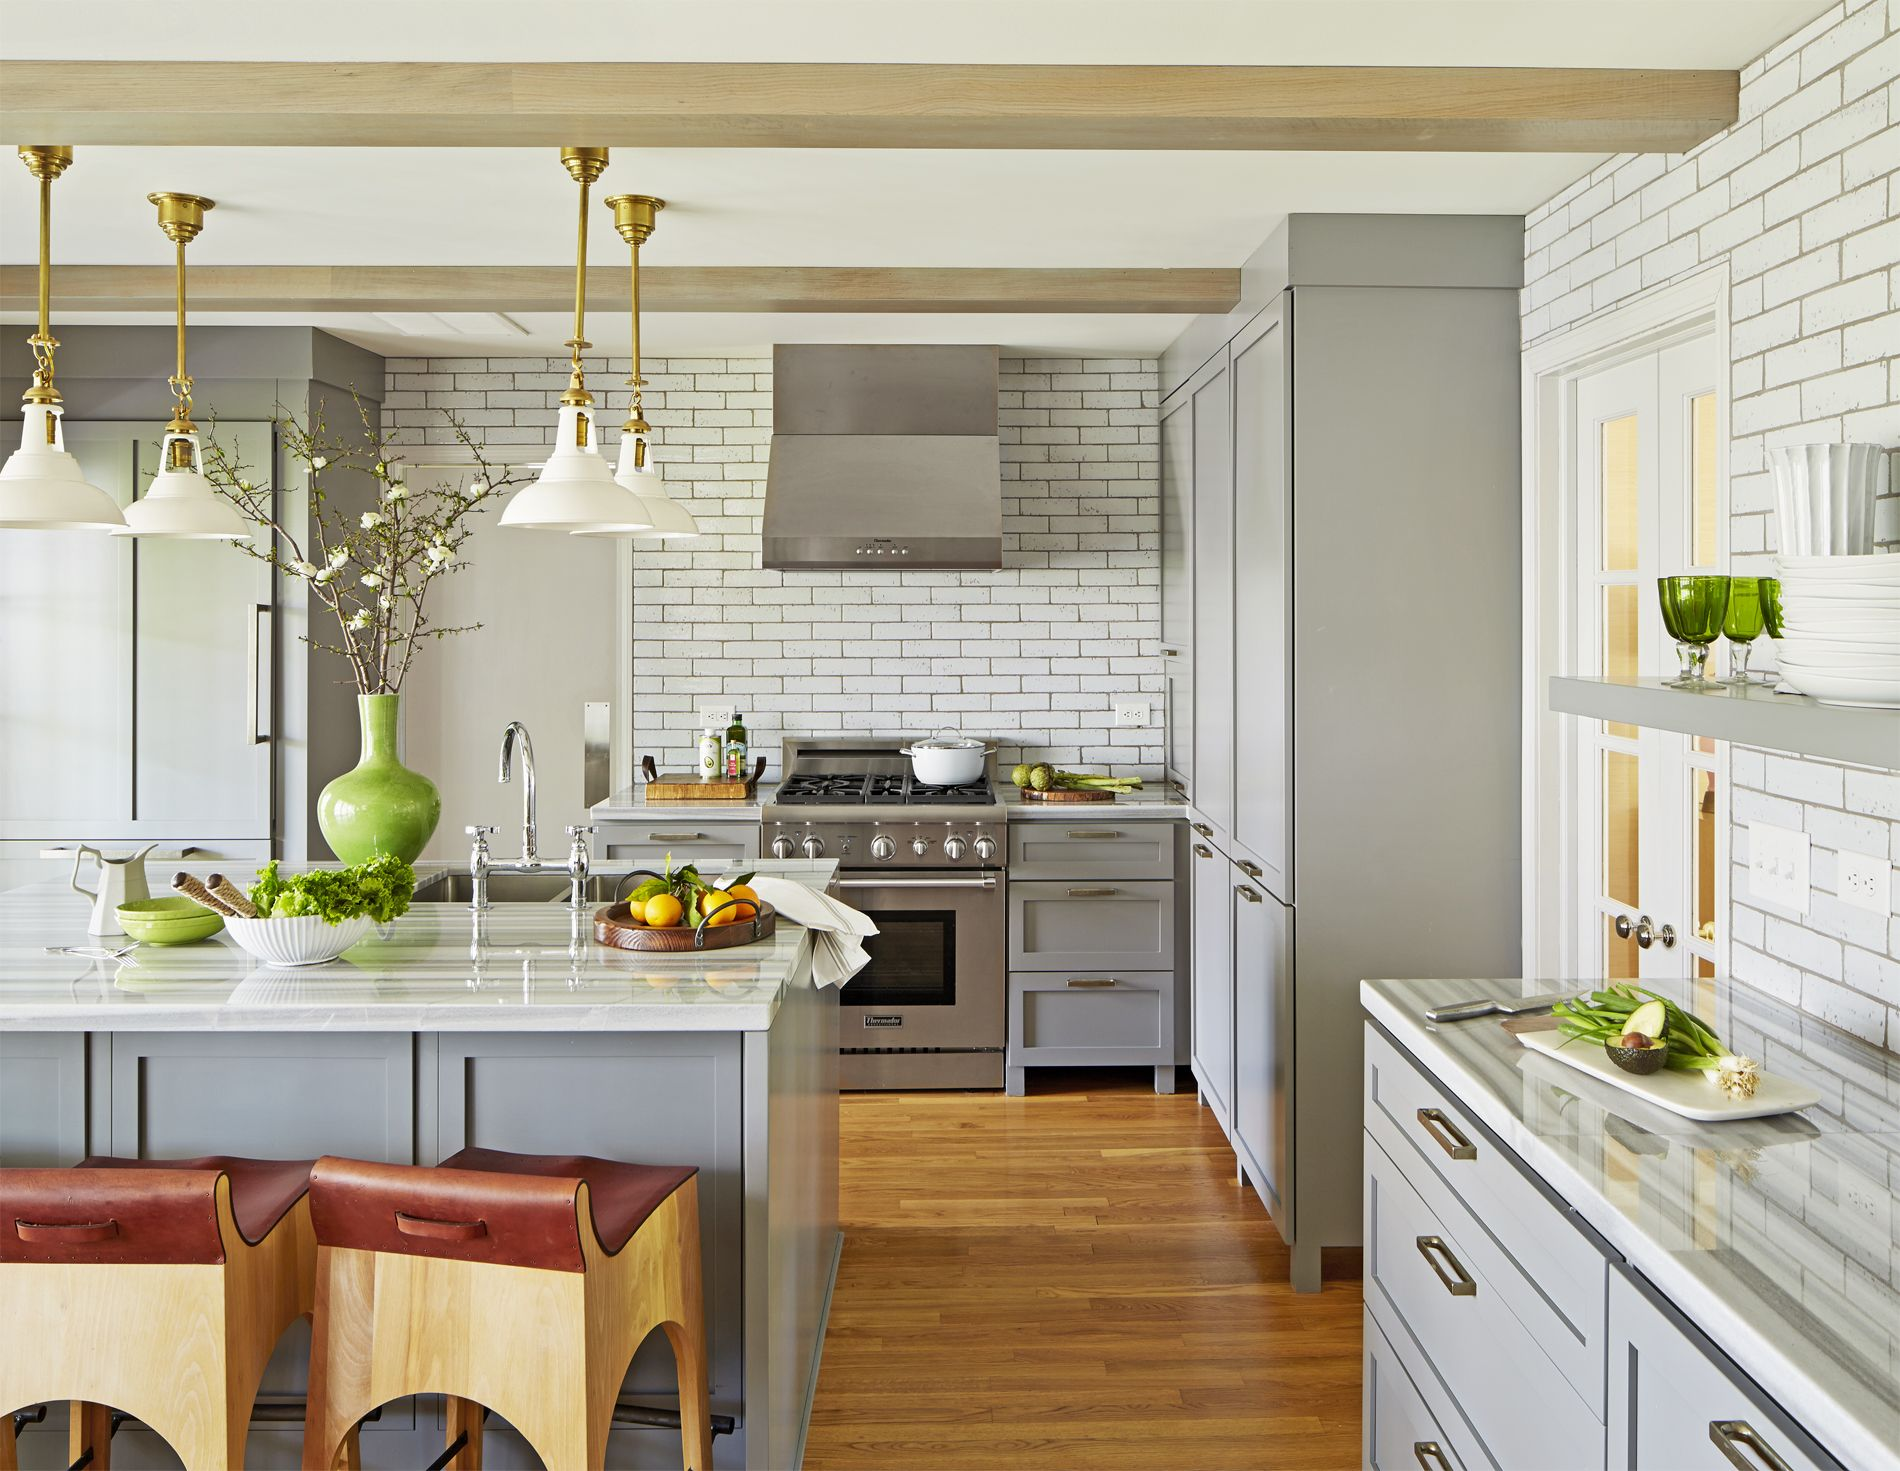 12 gorgeous kitchen trends for 2019 - new cabinet and color design ideas